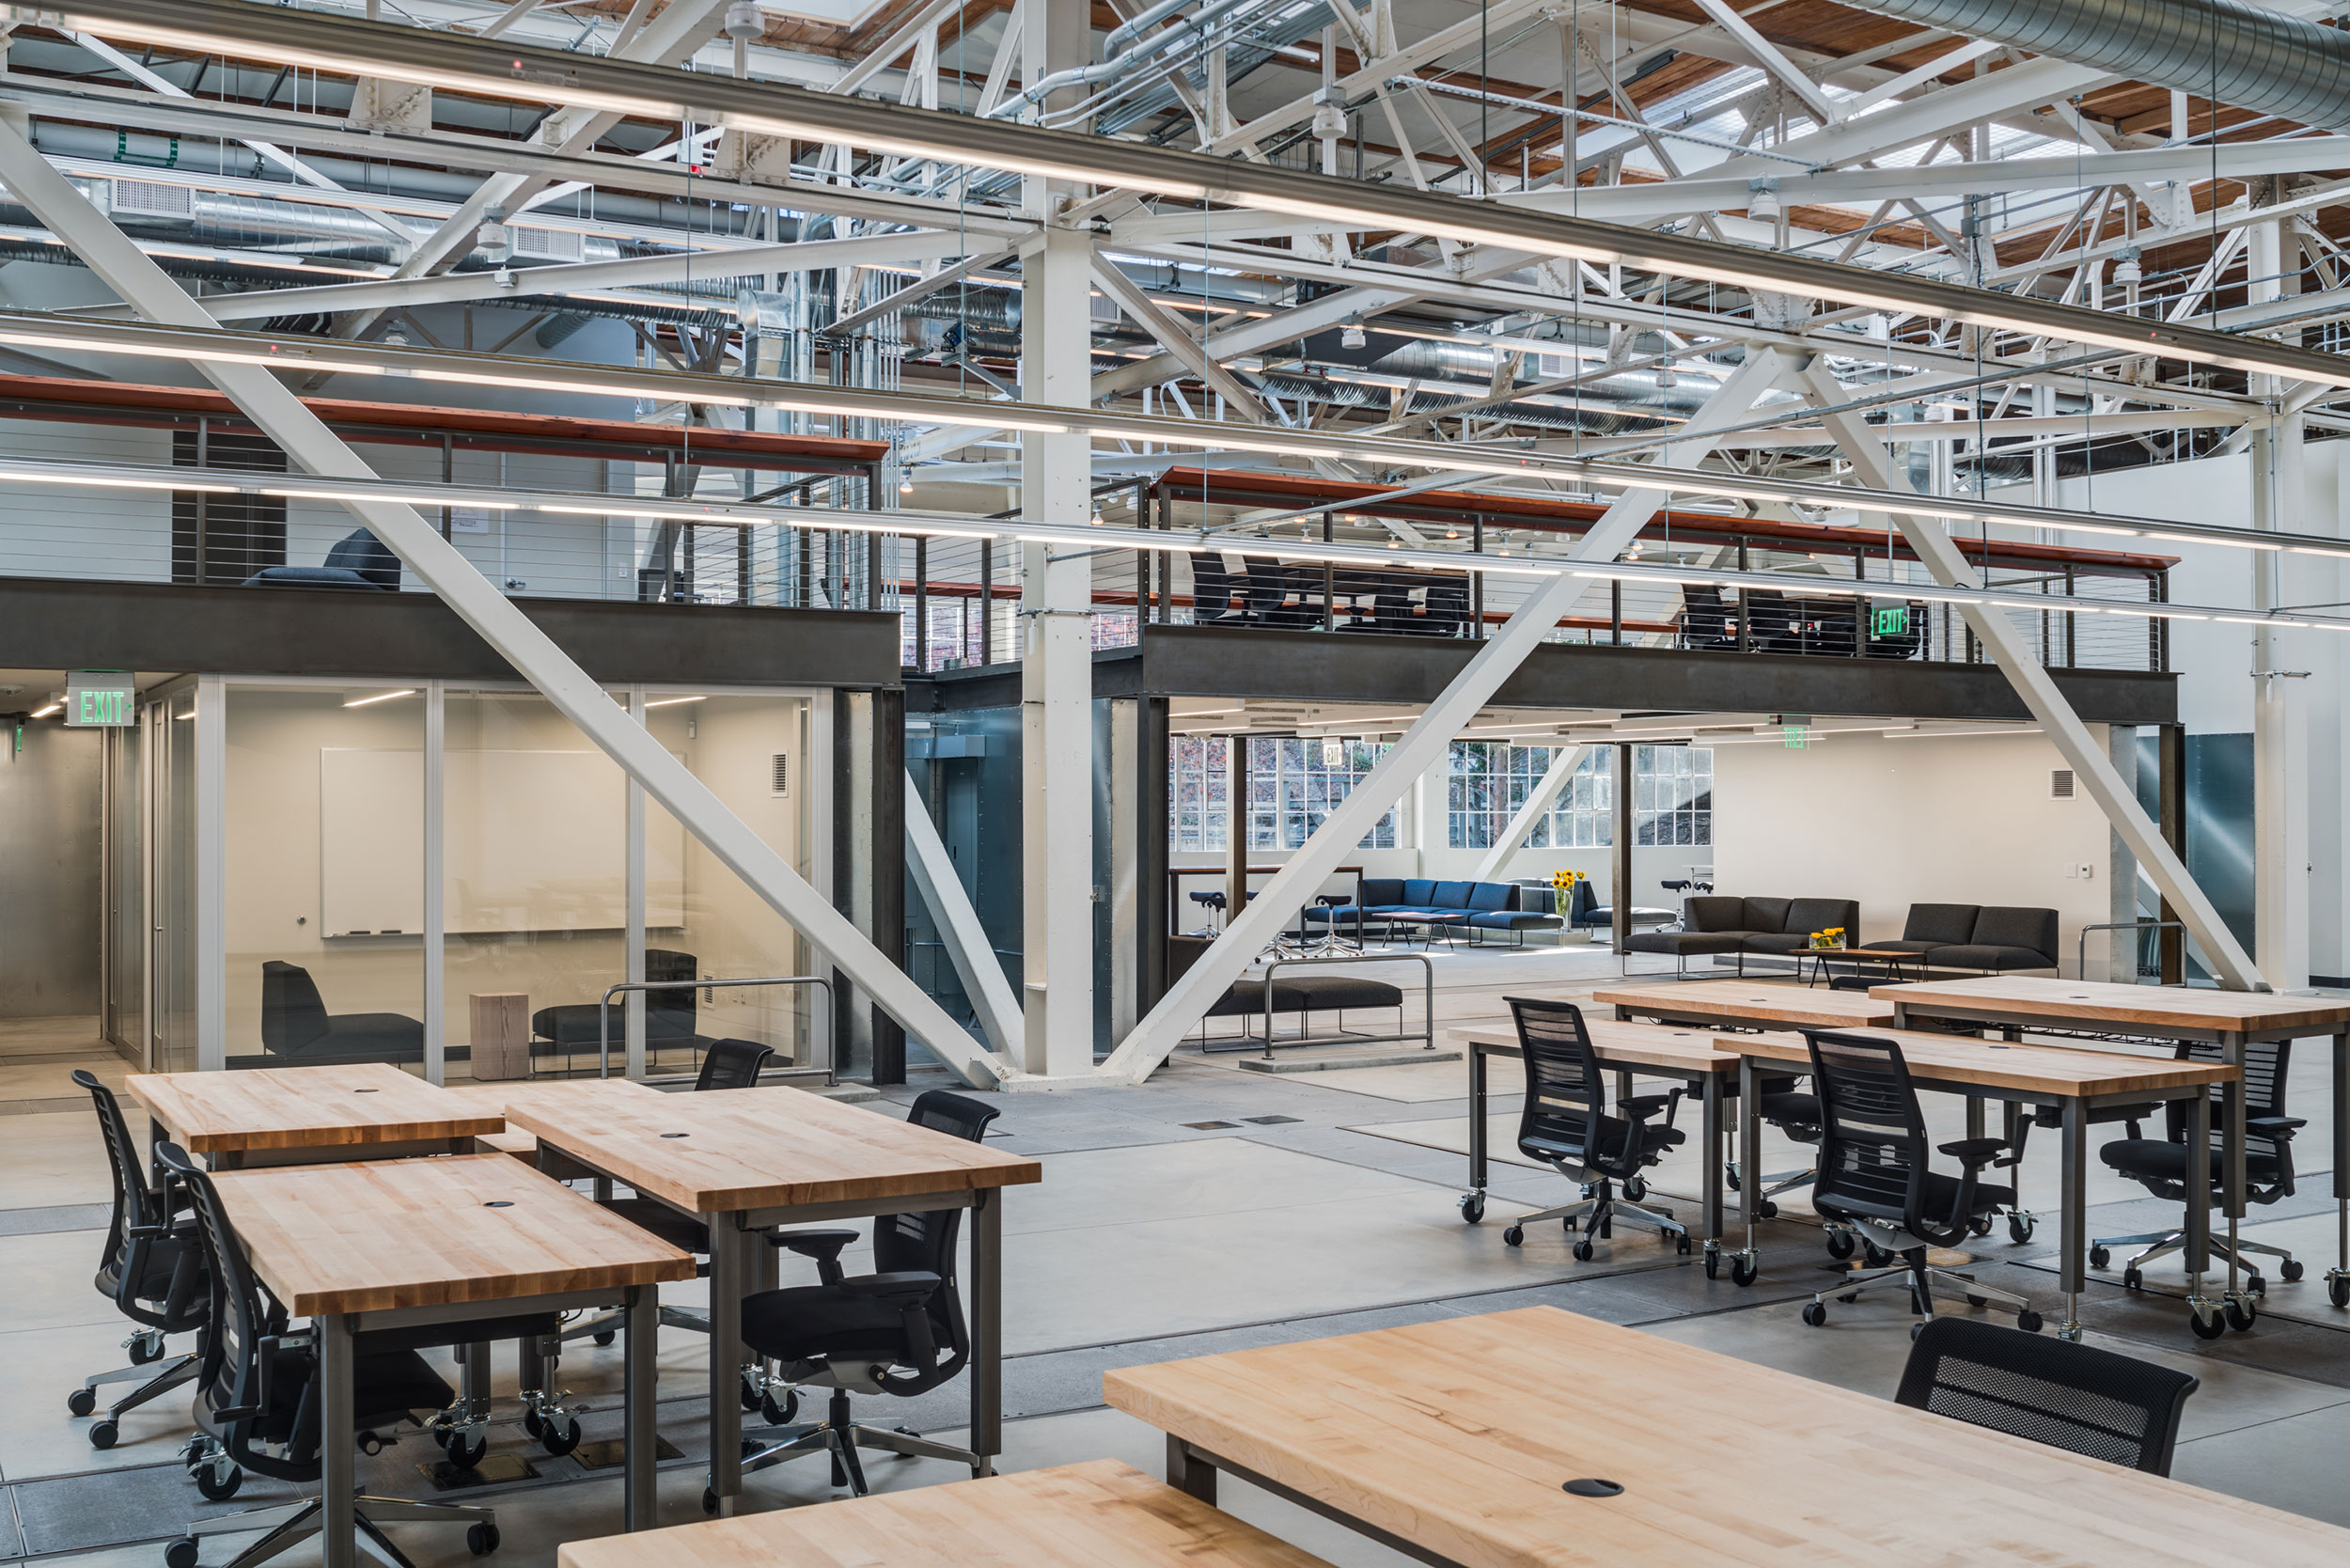 San Francisco Workplace, Office, Adaptive Reuse, Tech Company, Open Workspace, Flexible Office, Natural Light, Steel Truss, Flexible Meeting Rooms